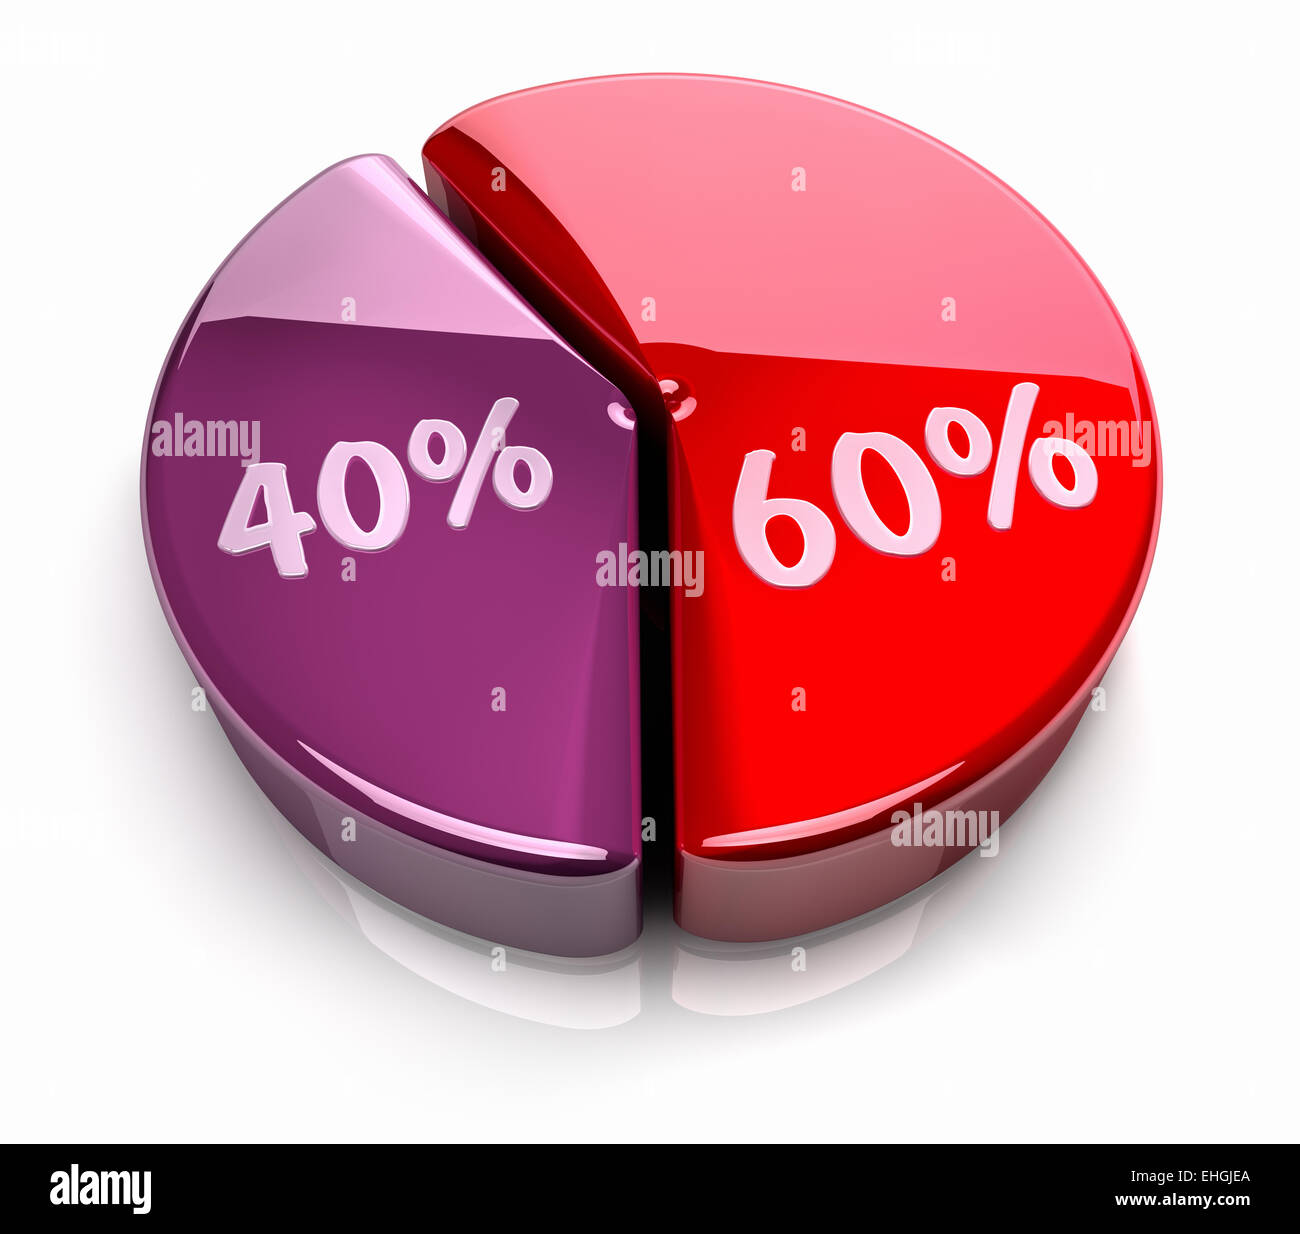 Pie chart 60 40 percent stock photo royalty free image 79656370 pie chart 60 40 percent nvjuhfo Choice Image